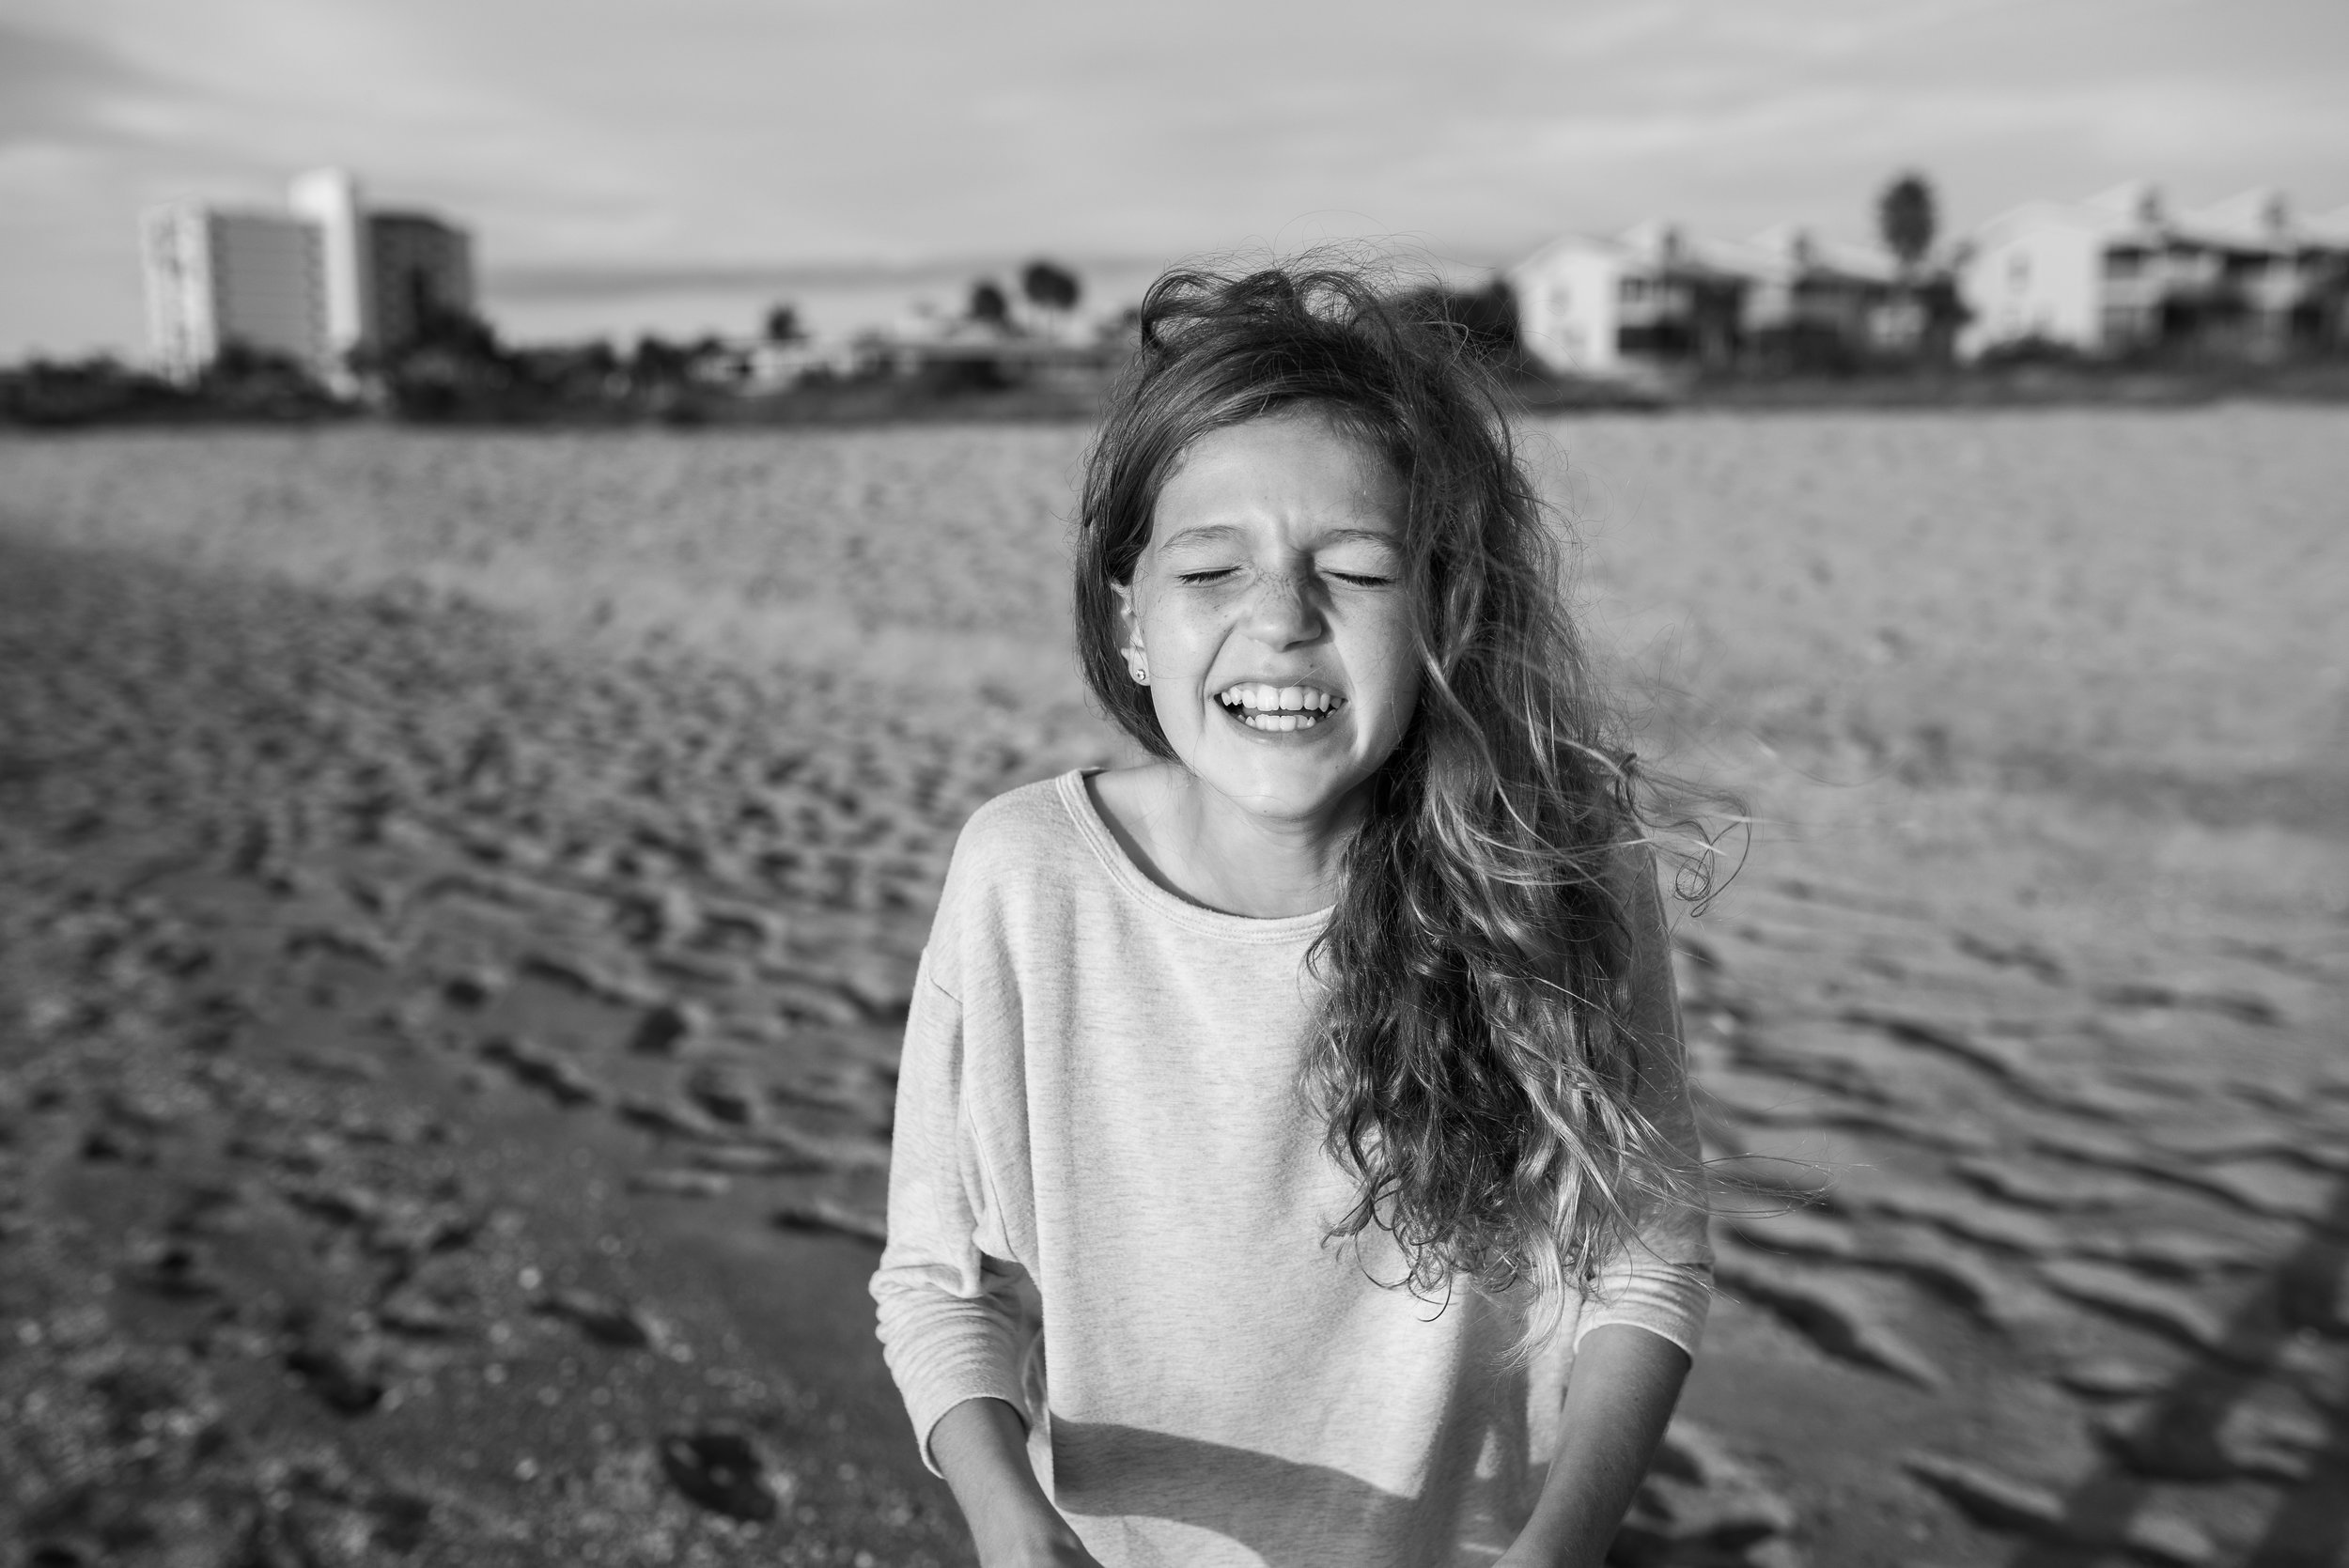 My wonderful, goofy girl came out to test some golden hour light for a quick family photo session for the Foldens and Gigi & Poppa.